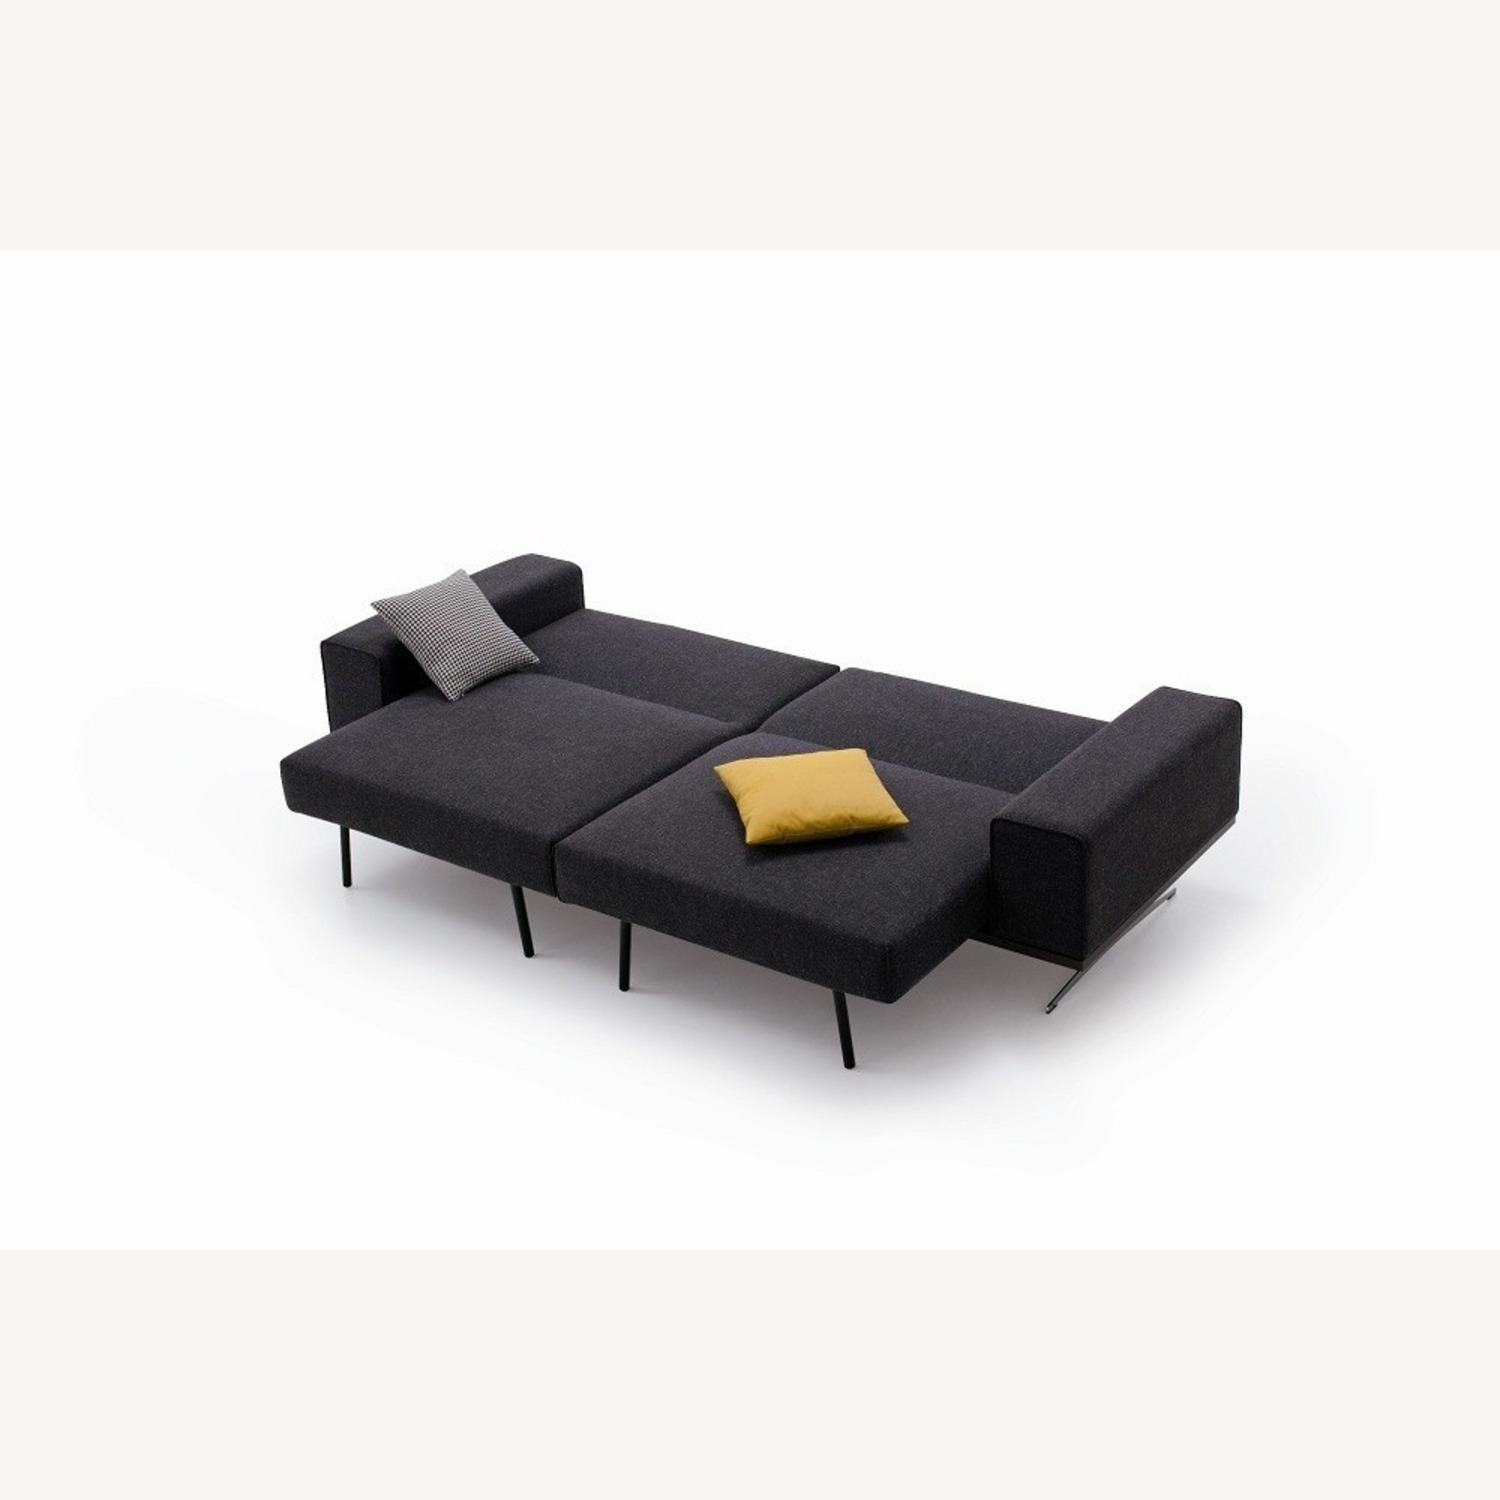 Wide Sofa Bed In Black Fabric Upholstery - image-1